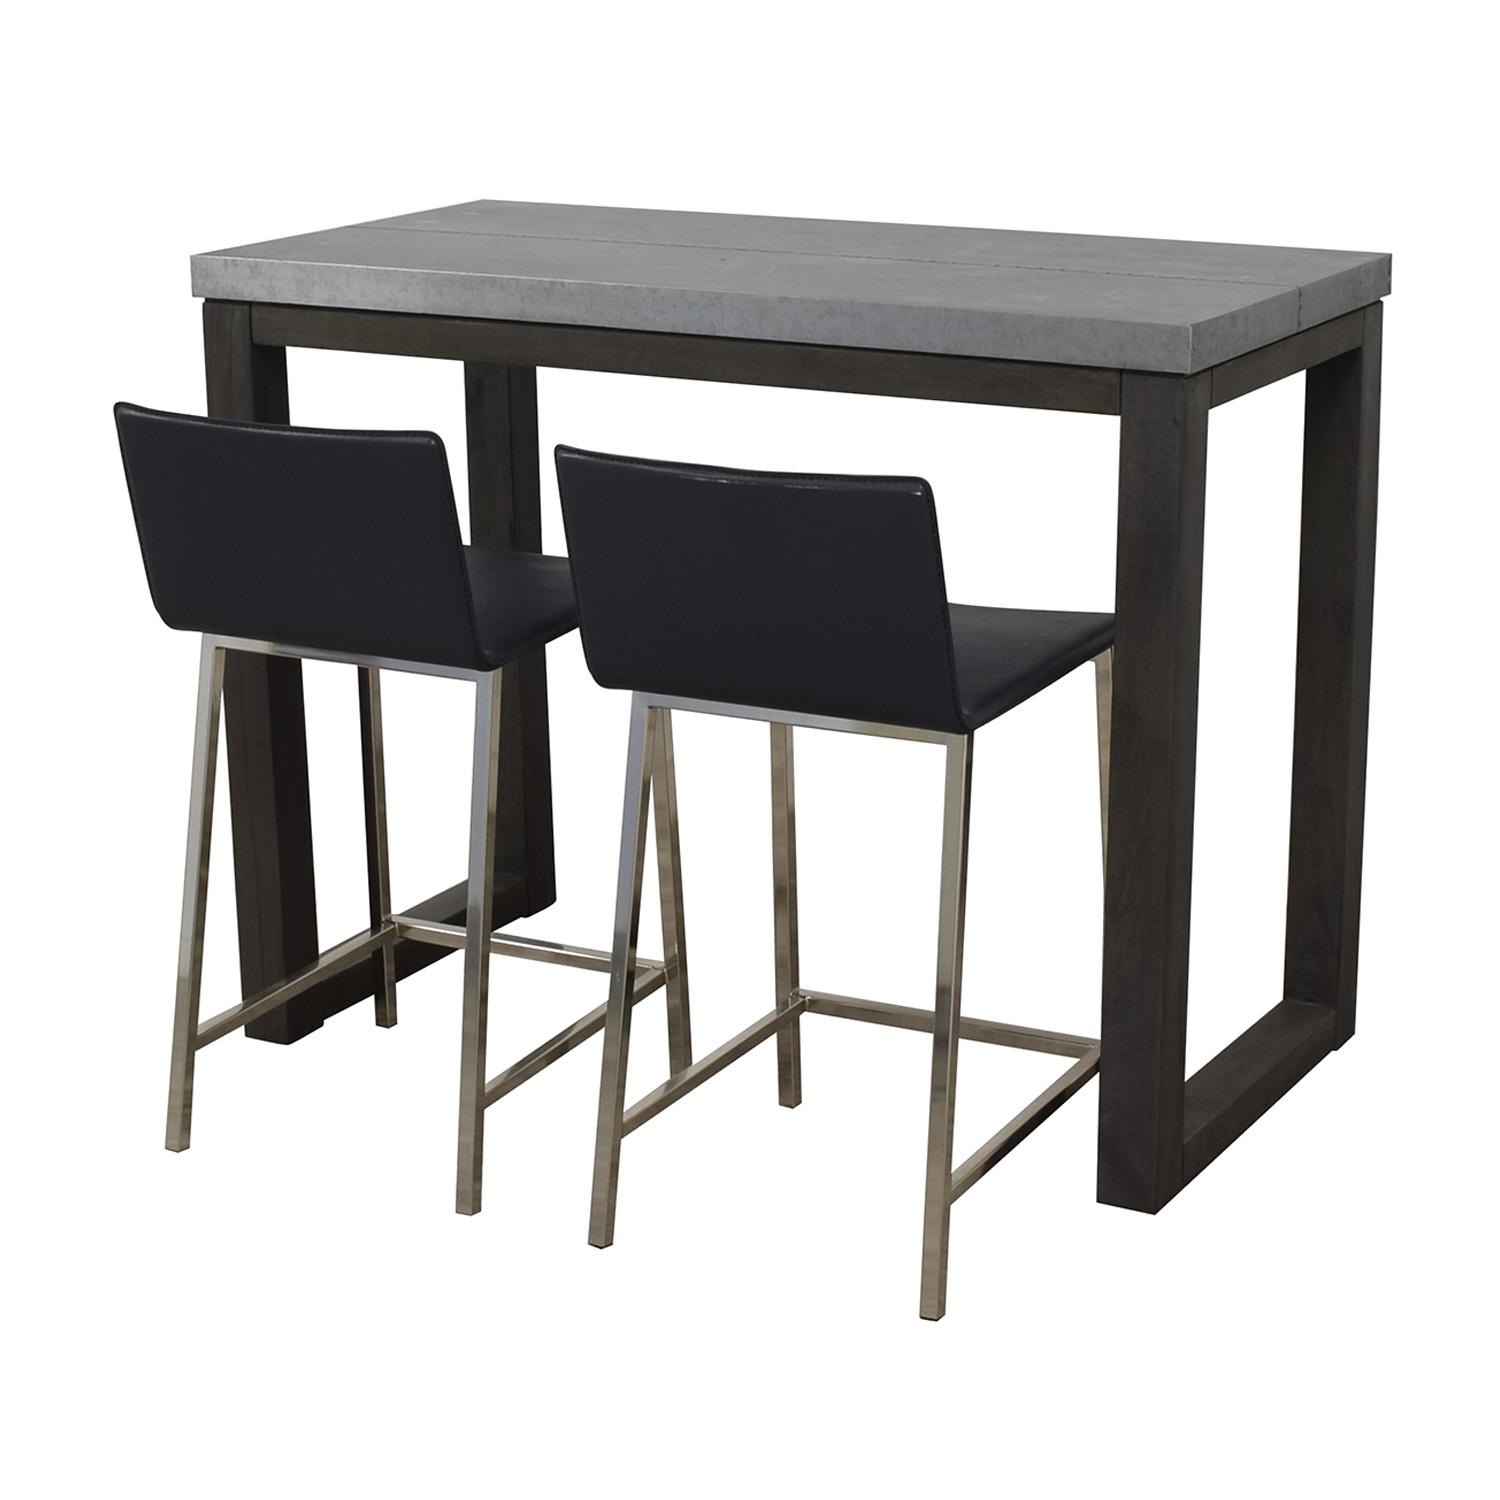 shop CB2 Stern Counter Table with Two Stools CB2